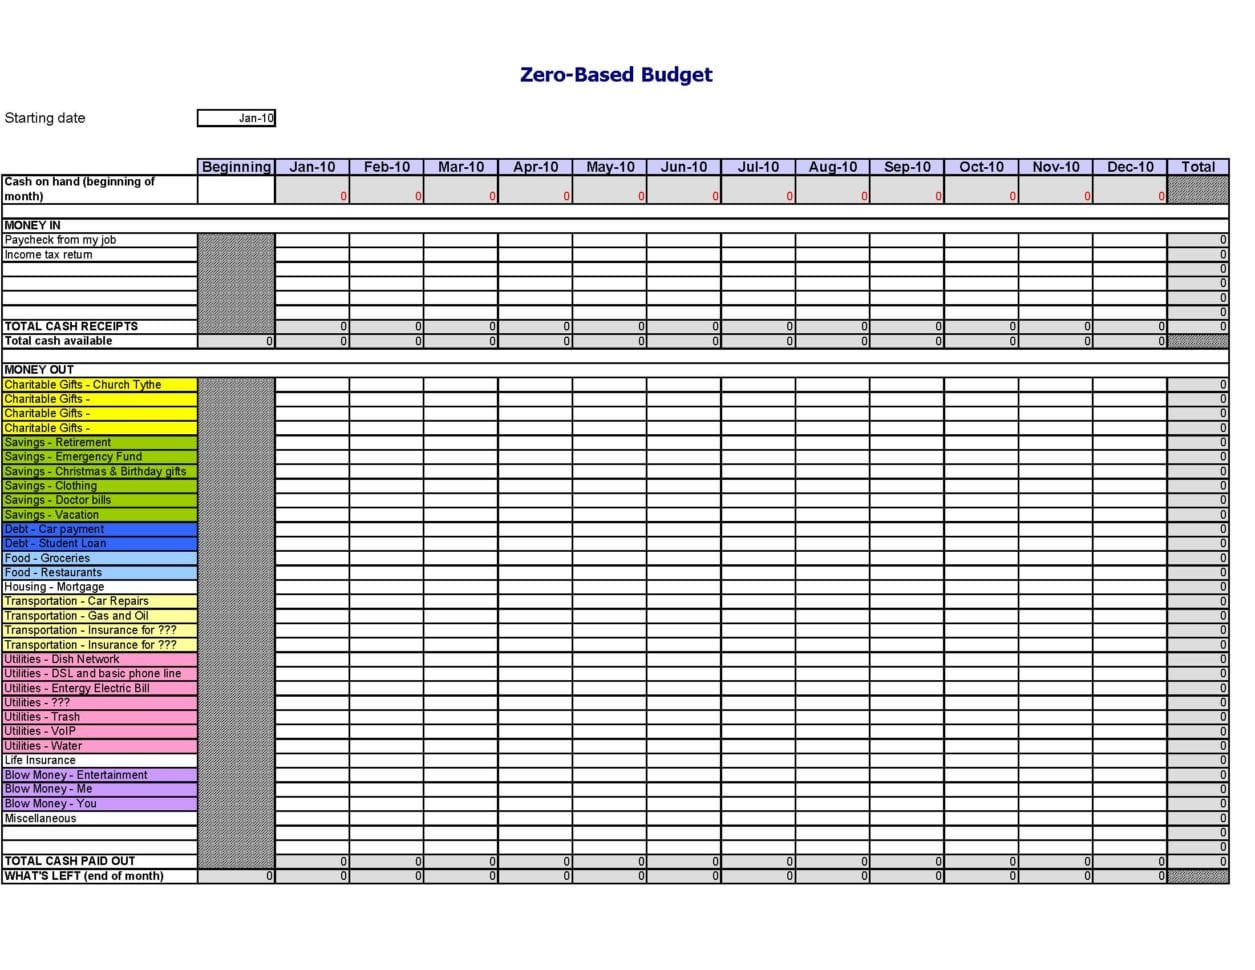 Expense Sheet For Small Business Small Business Expense Report Template Project Expense Tracking Spreadsheet Personal Expense Tracking Spreadsheet Template Excel Expense Tracker Template Expense Tracking Form Business Expense Tracking Spreadsheet Template  Excel Expense Tracker Template Expense Tracking Spreadsheet Template Spreadsheet Templates for Busines